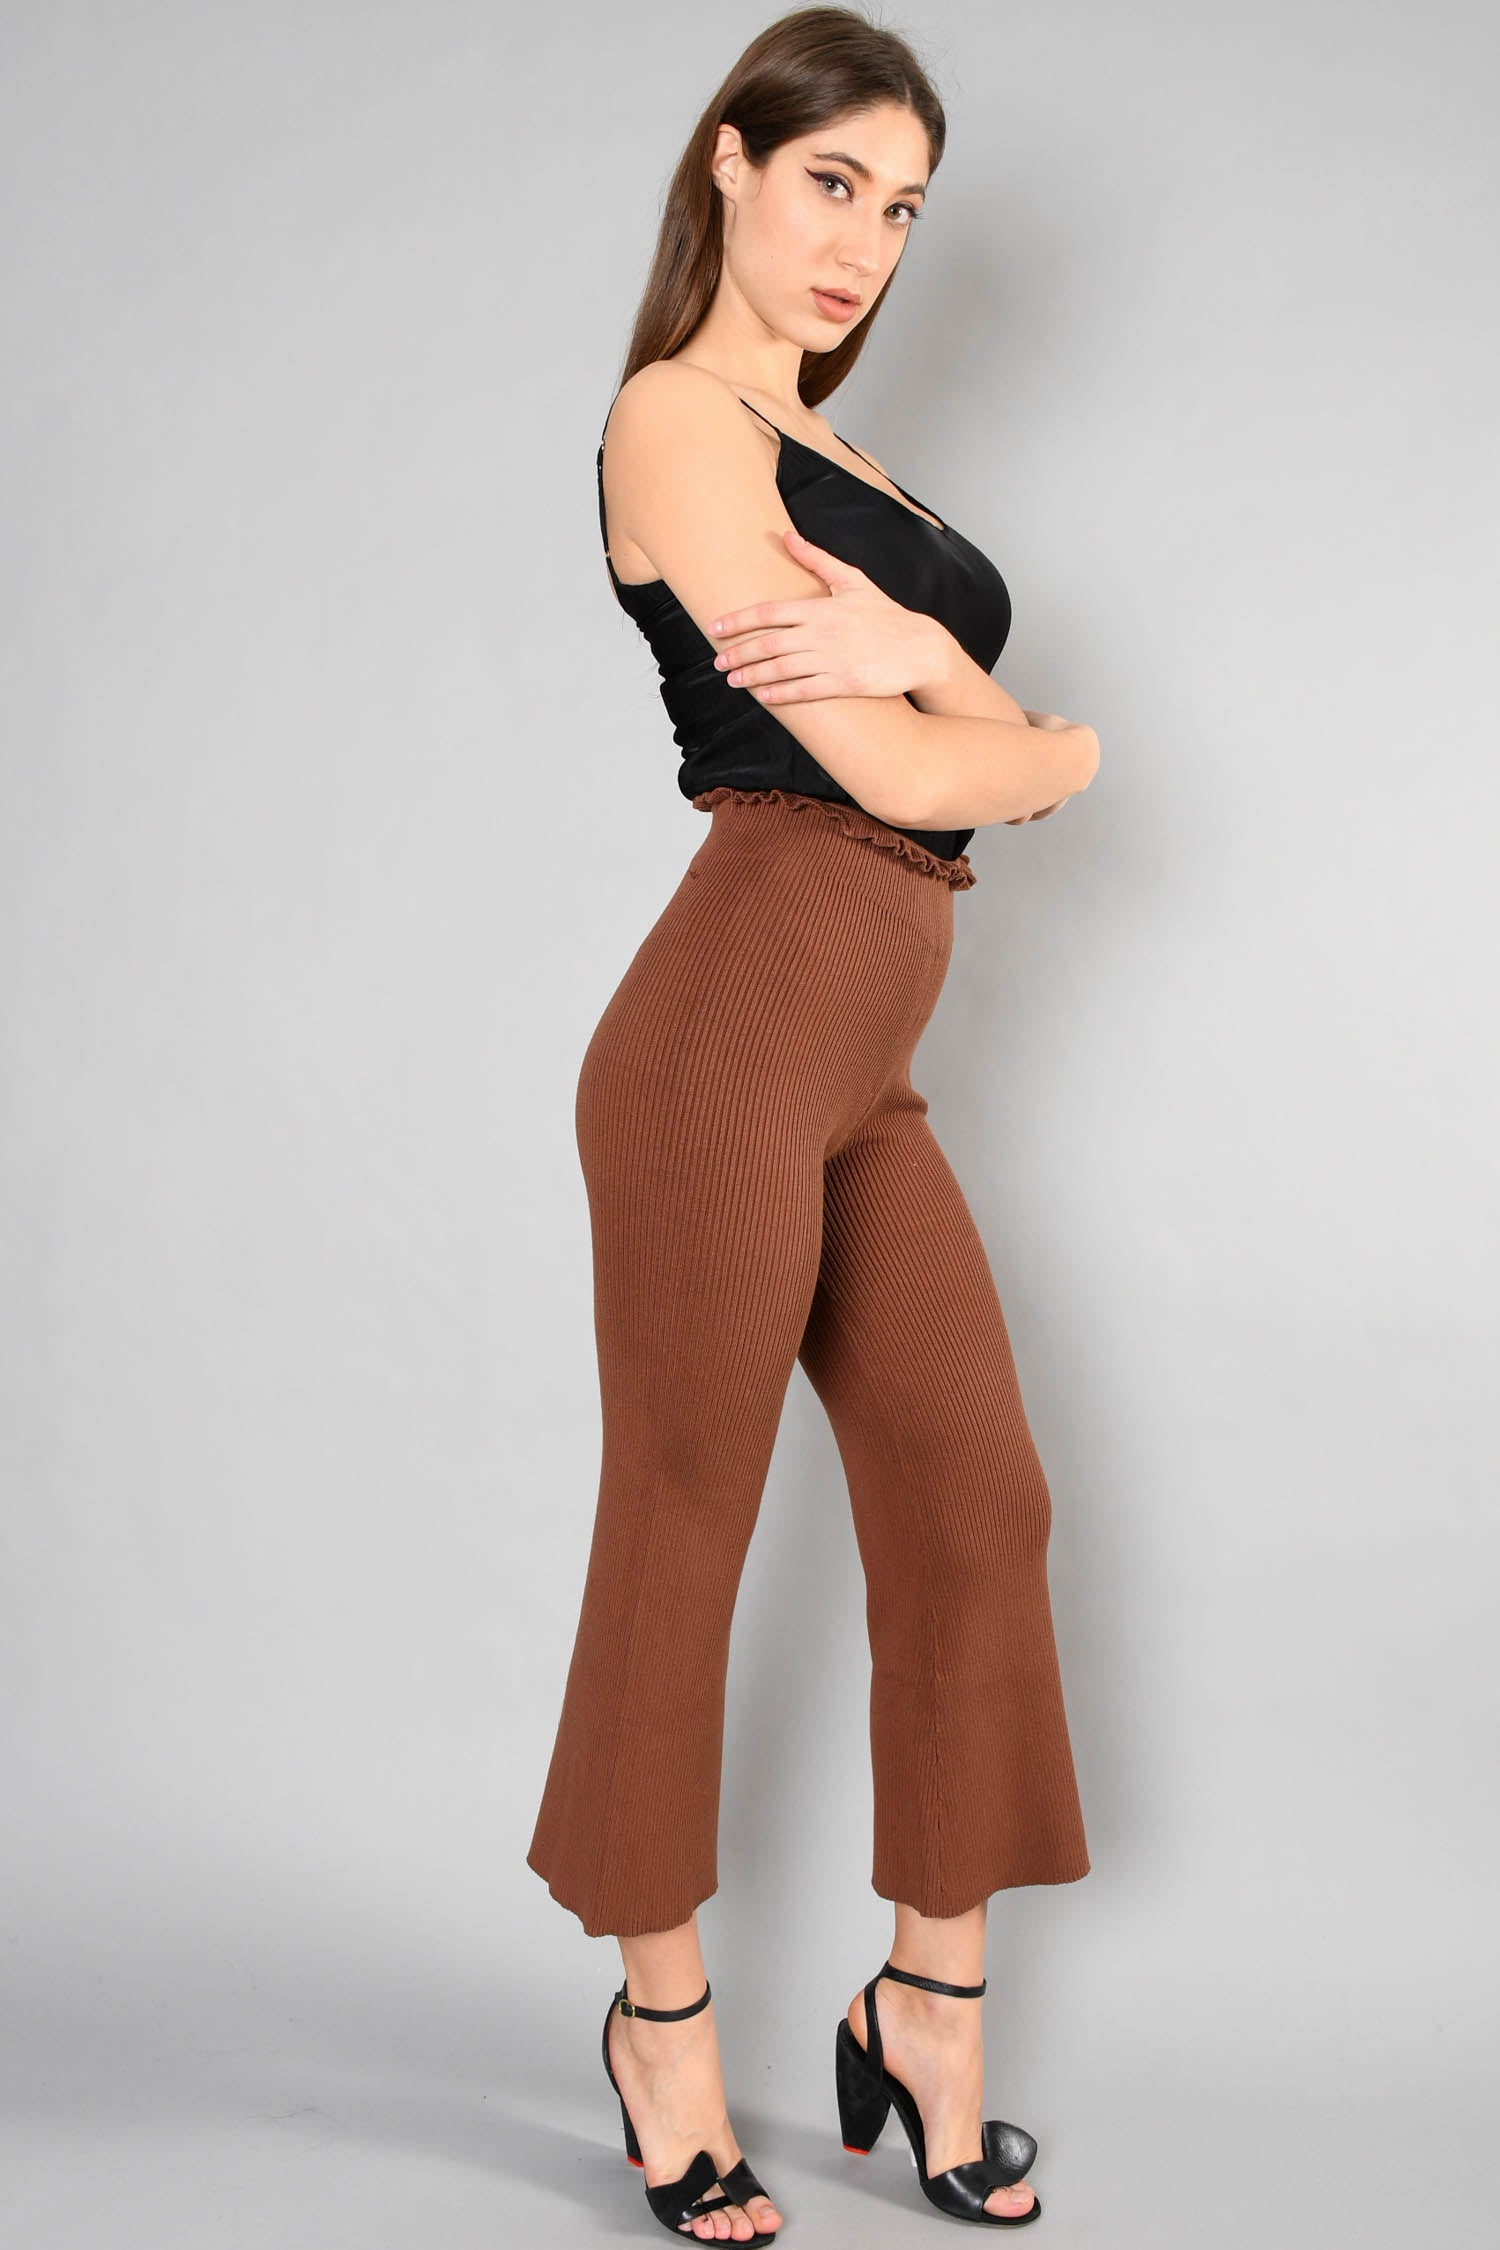 Majorelle Brown Ribbed Wide Leg Knit - The Sweet Heart Pants Size XS